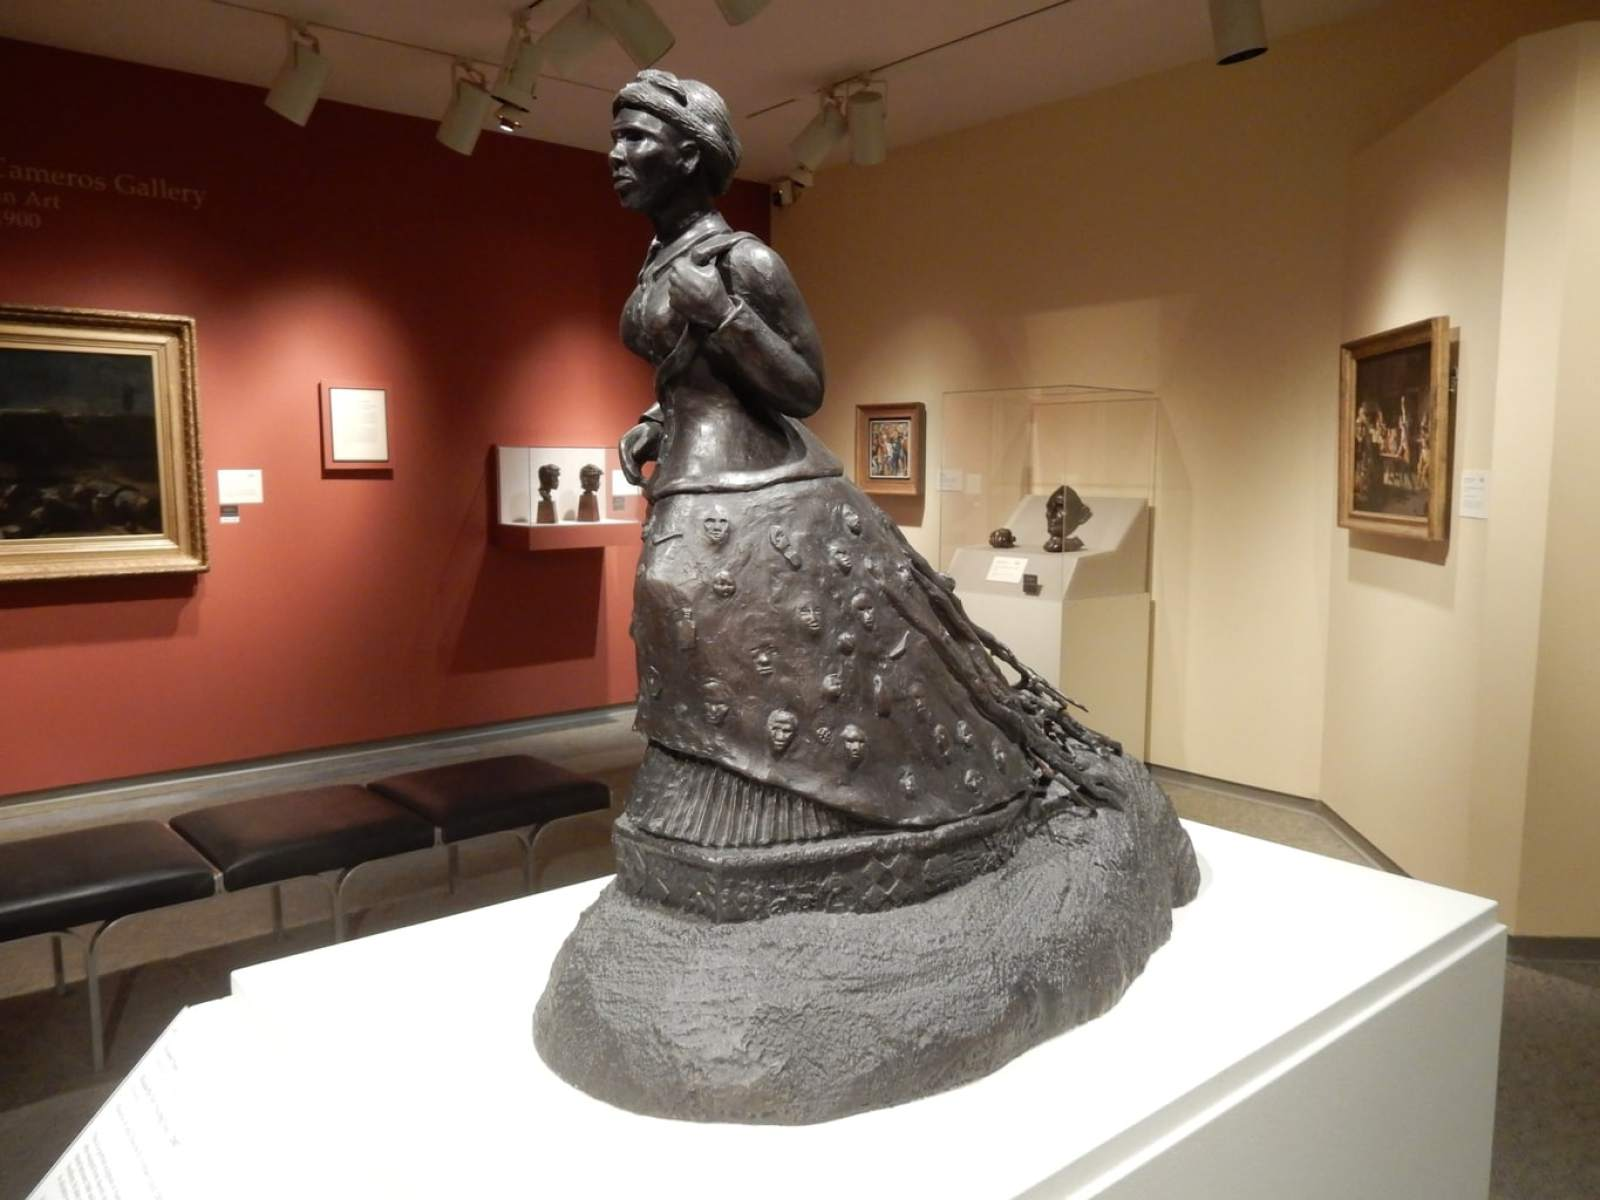 Harriet Tubman Sculpture Memorial Art Gallery Rochester NY